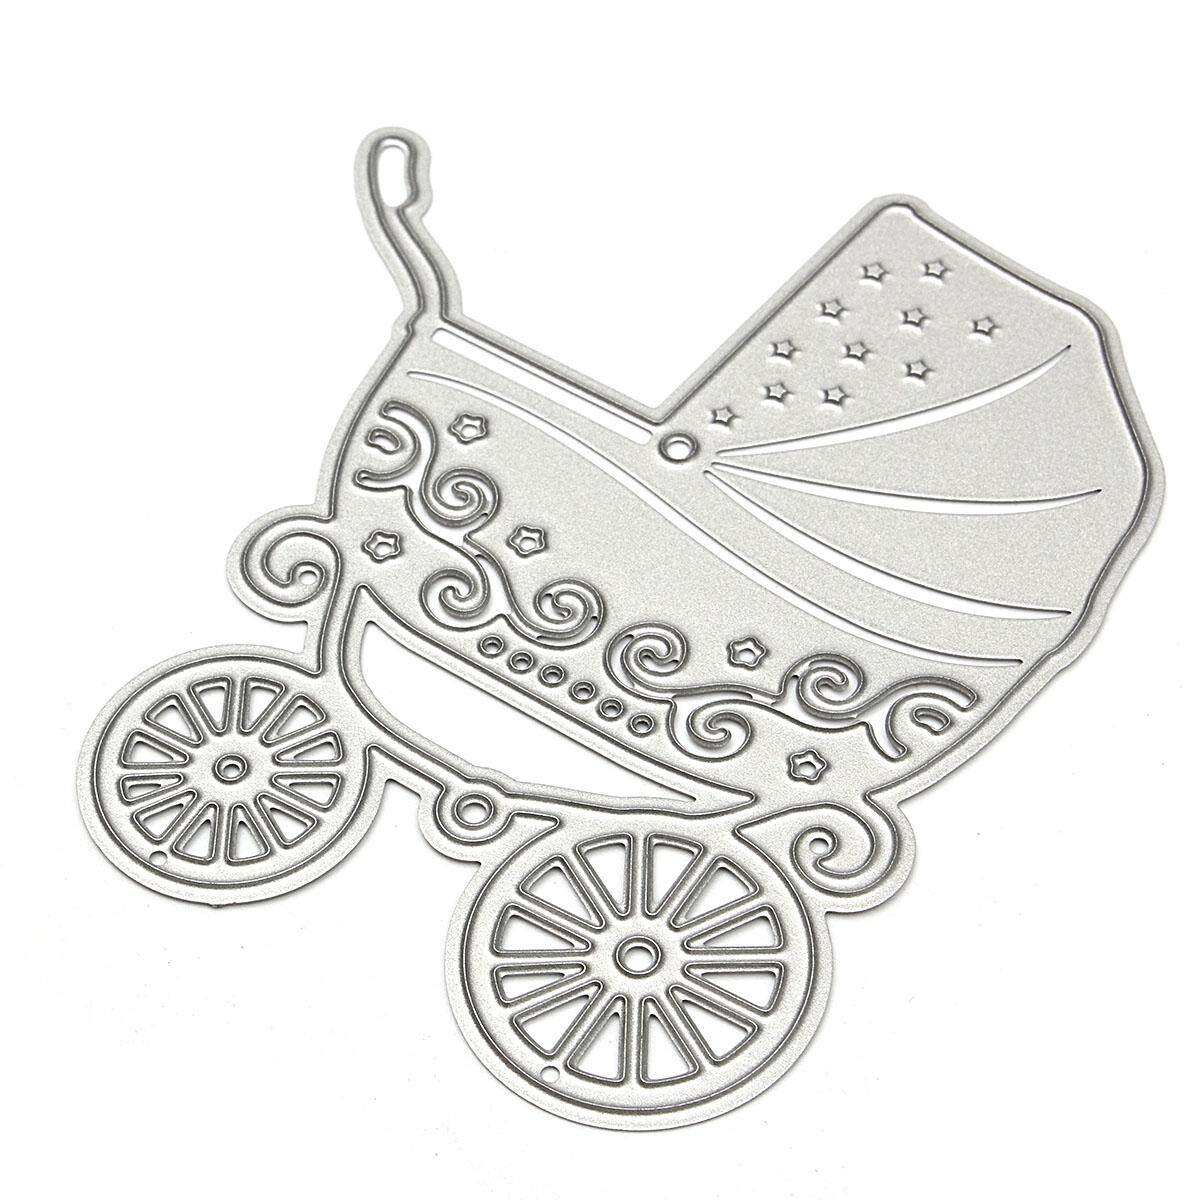 Baby Carriage Cutting Dies Stencil Scrapbook Card Album Embossing Craft Decor By Glimmer.